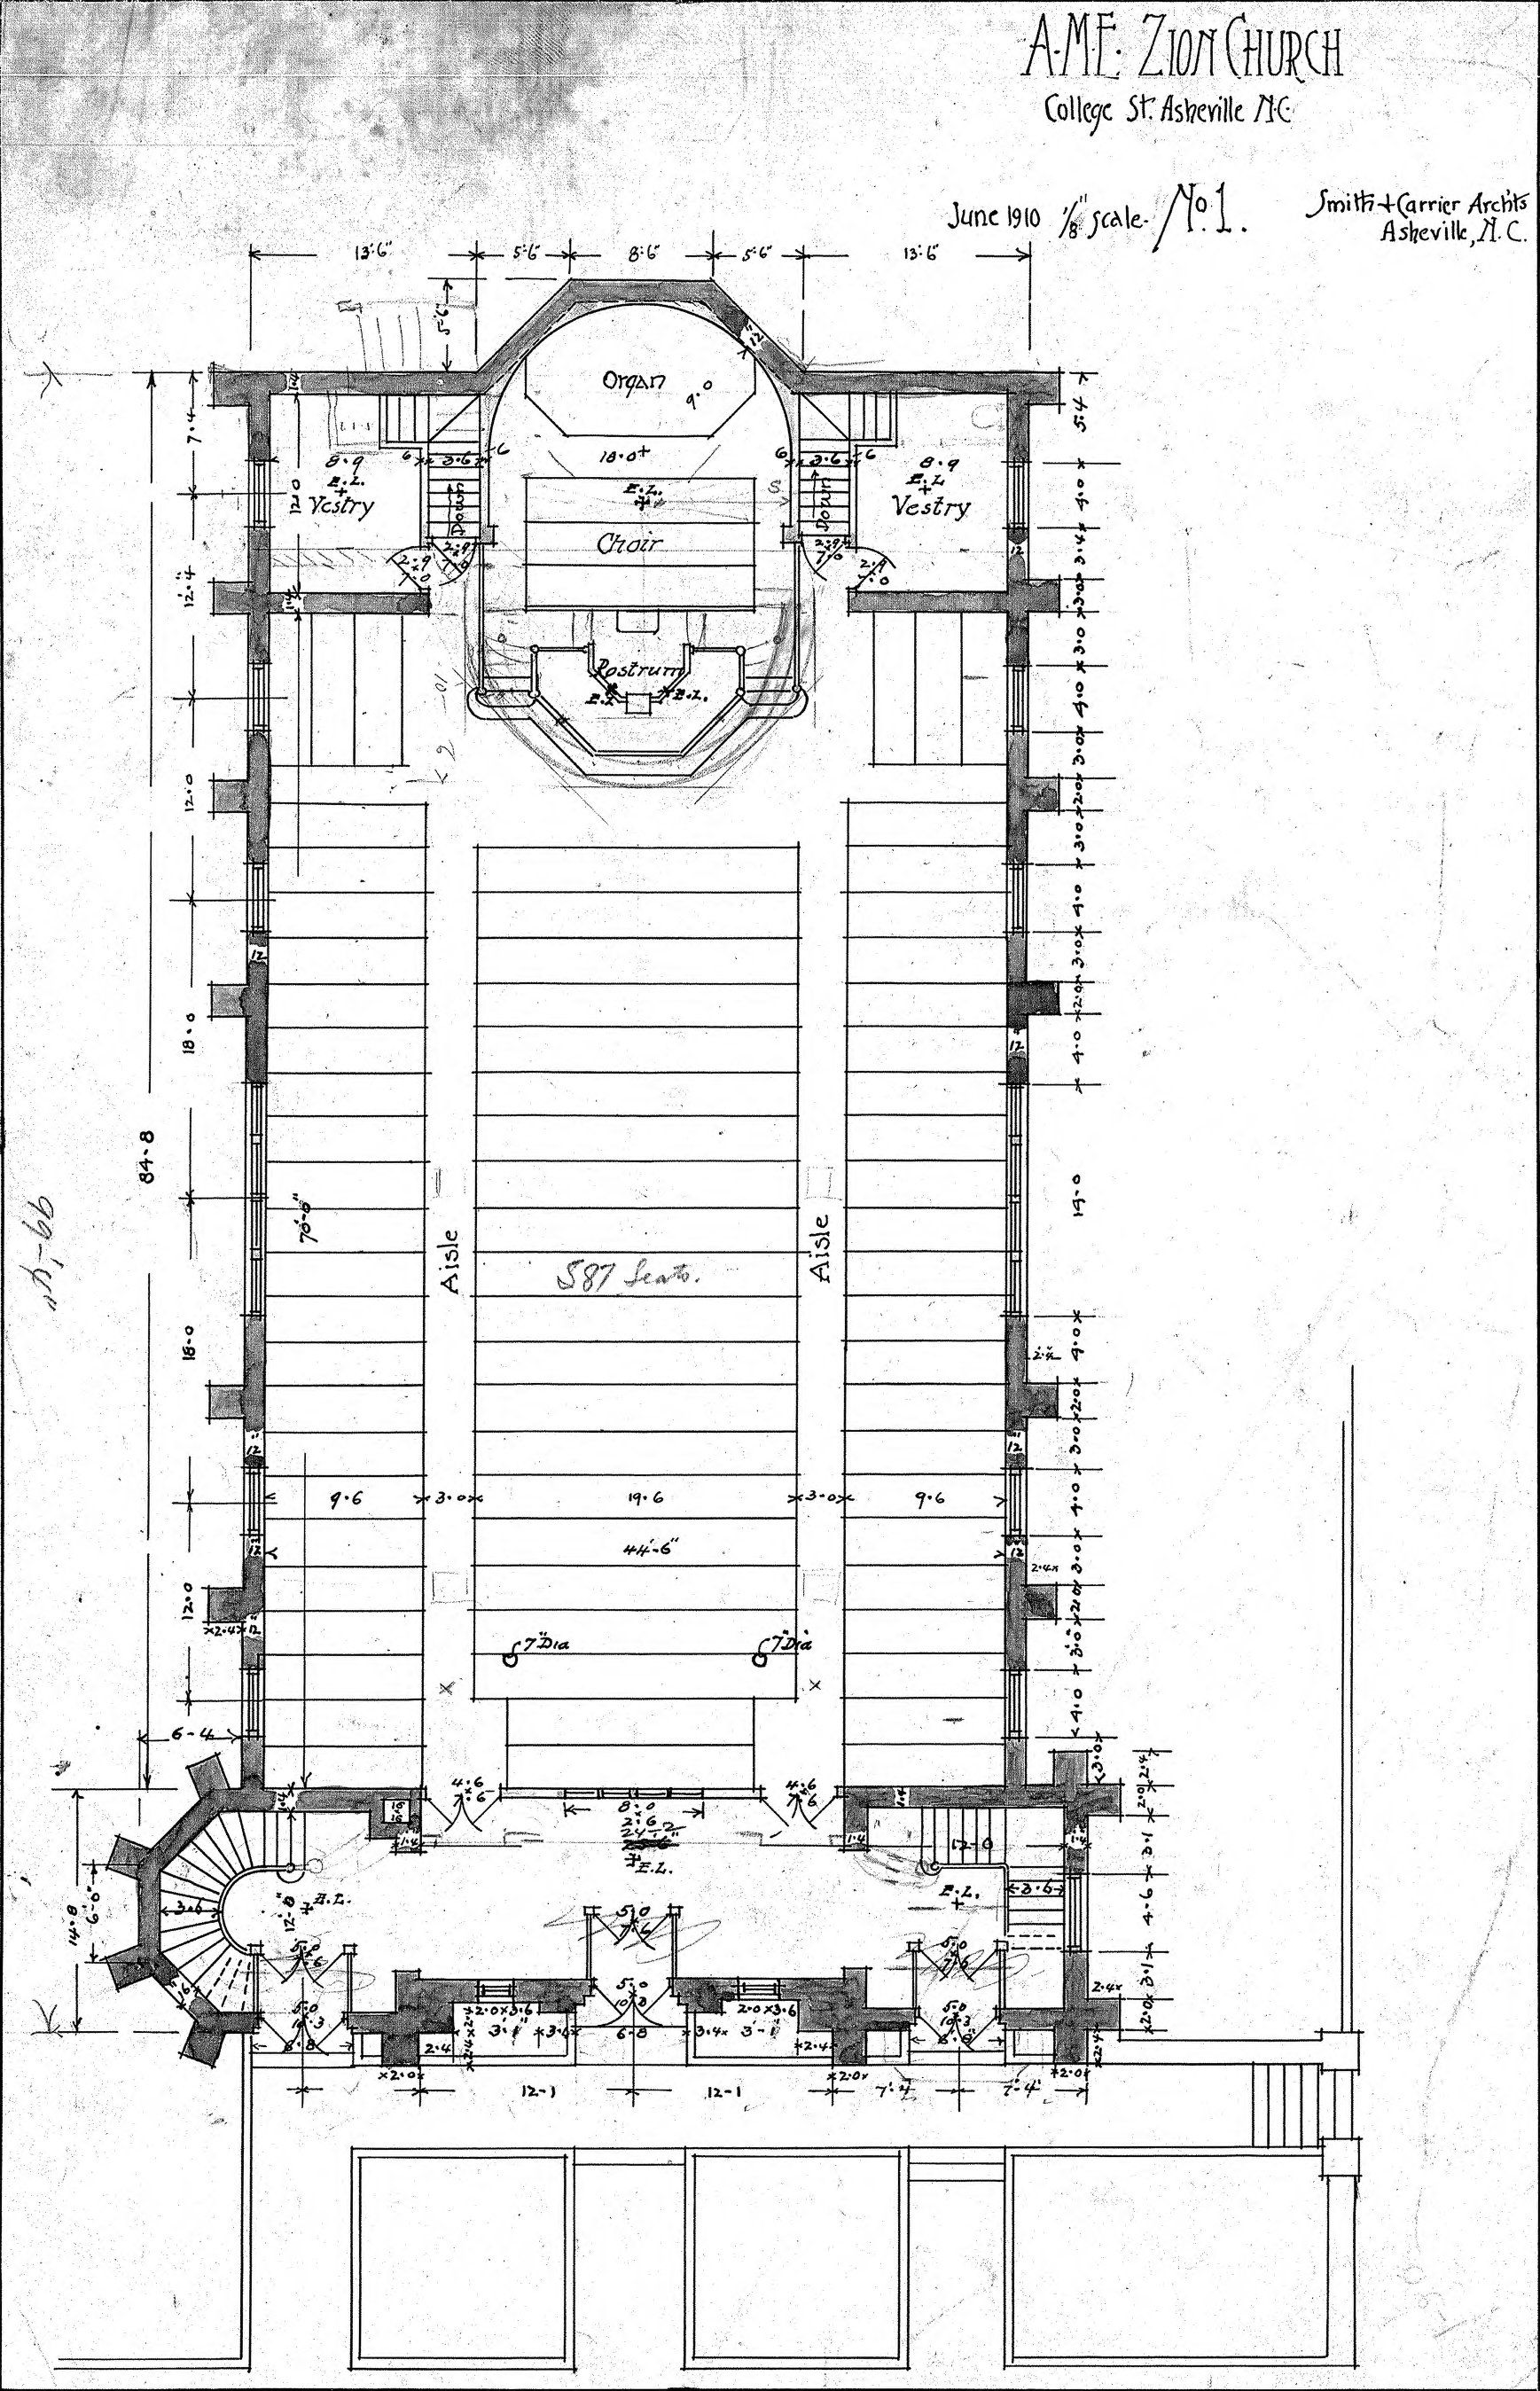 Church floor plans museums architecture pinterest for Floor plan blueprints free